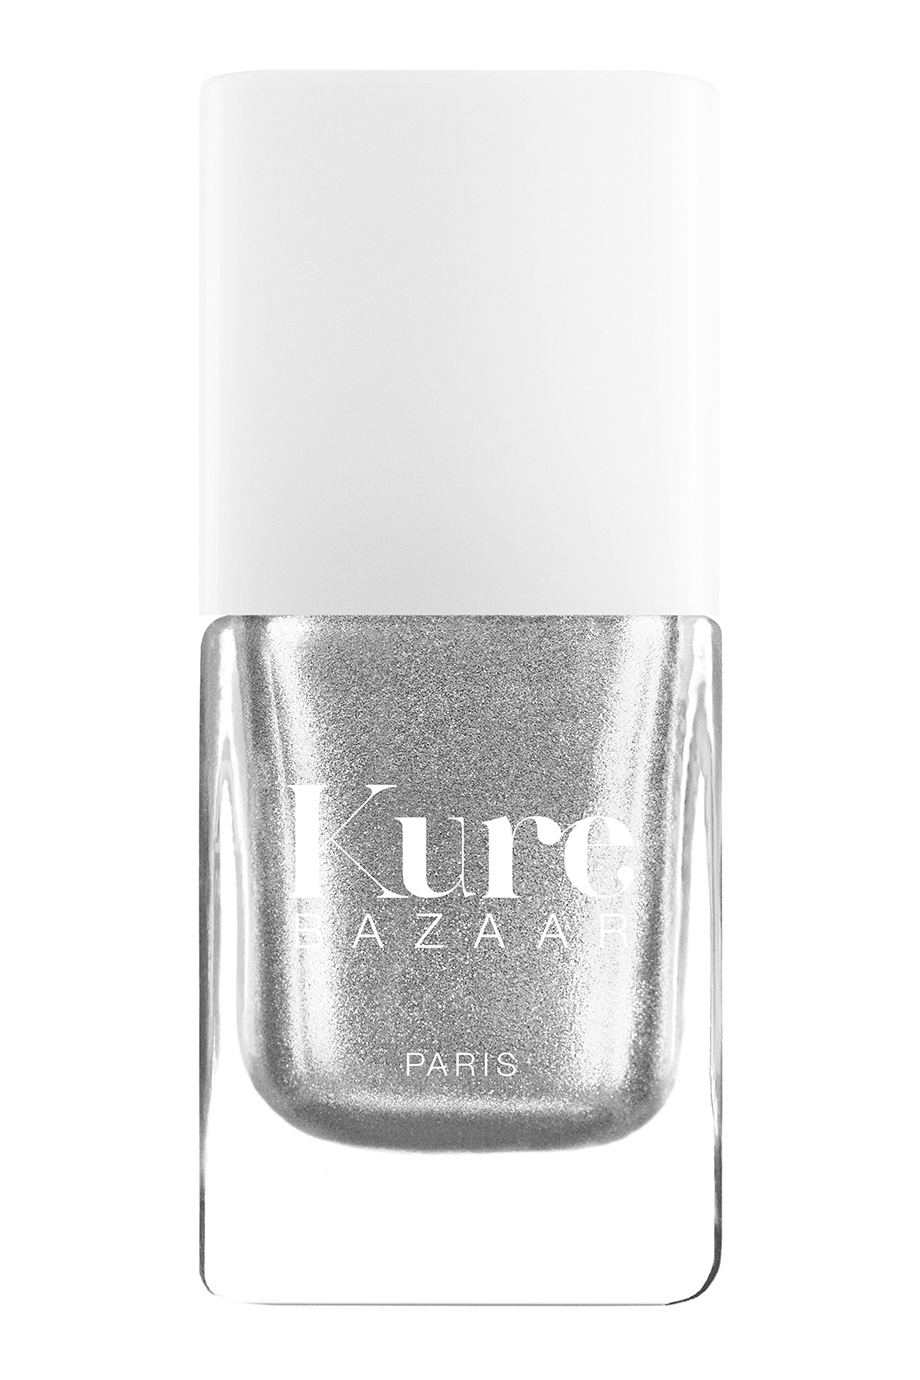 Лак для ногтей Platinum 10ml Kure Bazaar (фото)